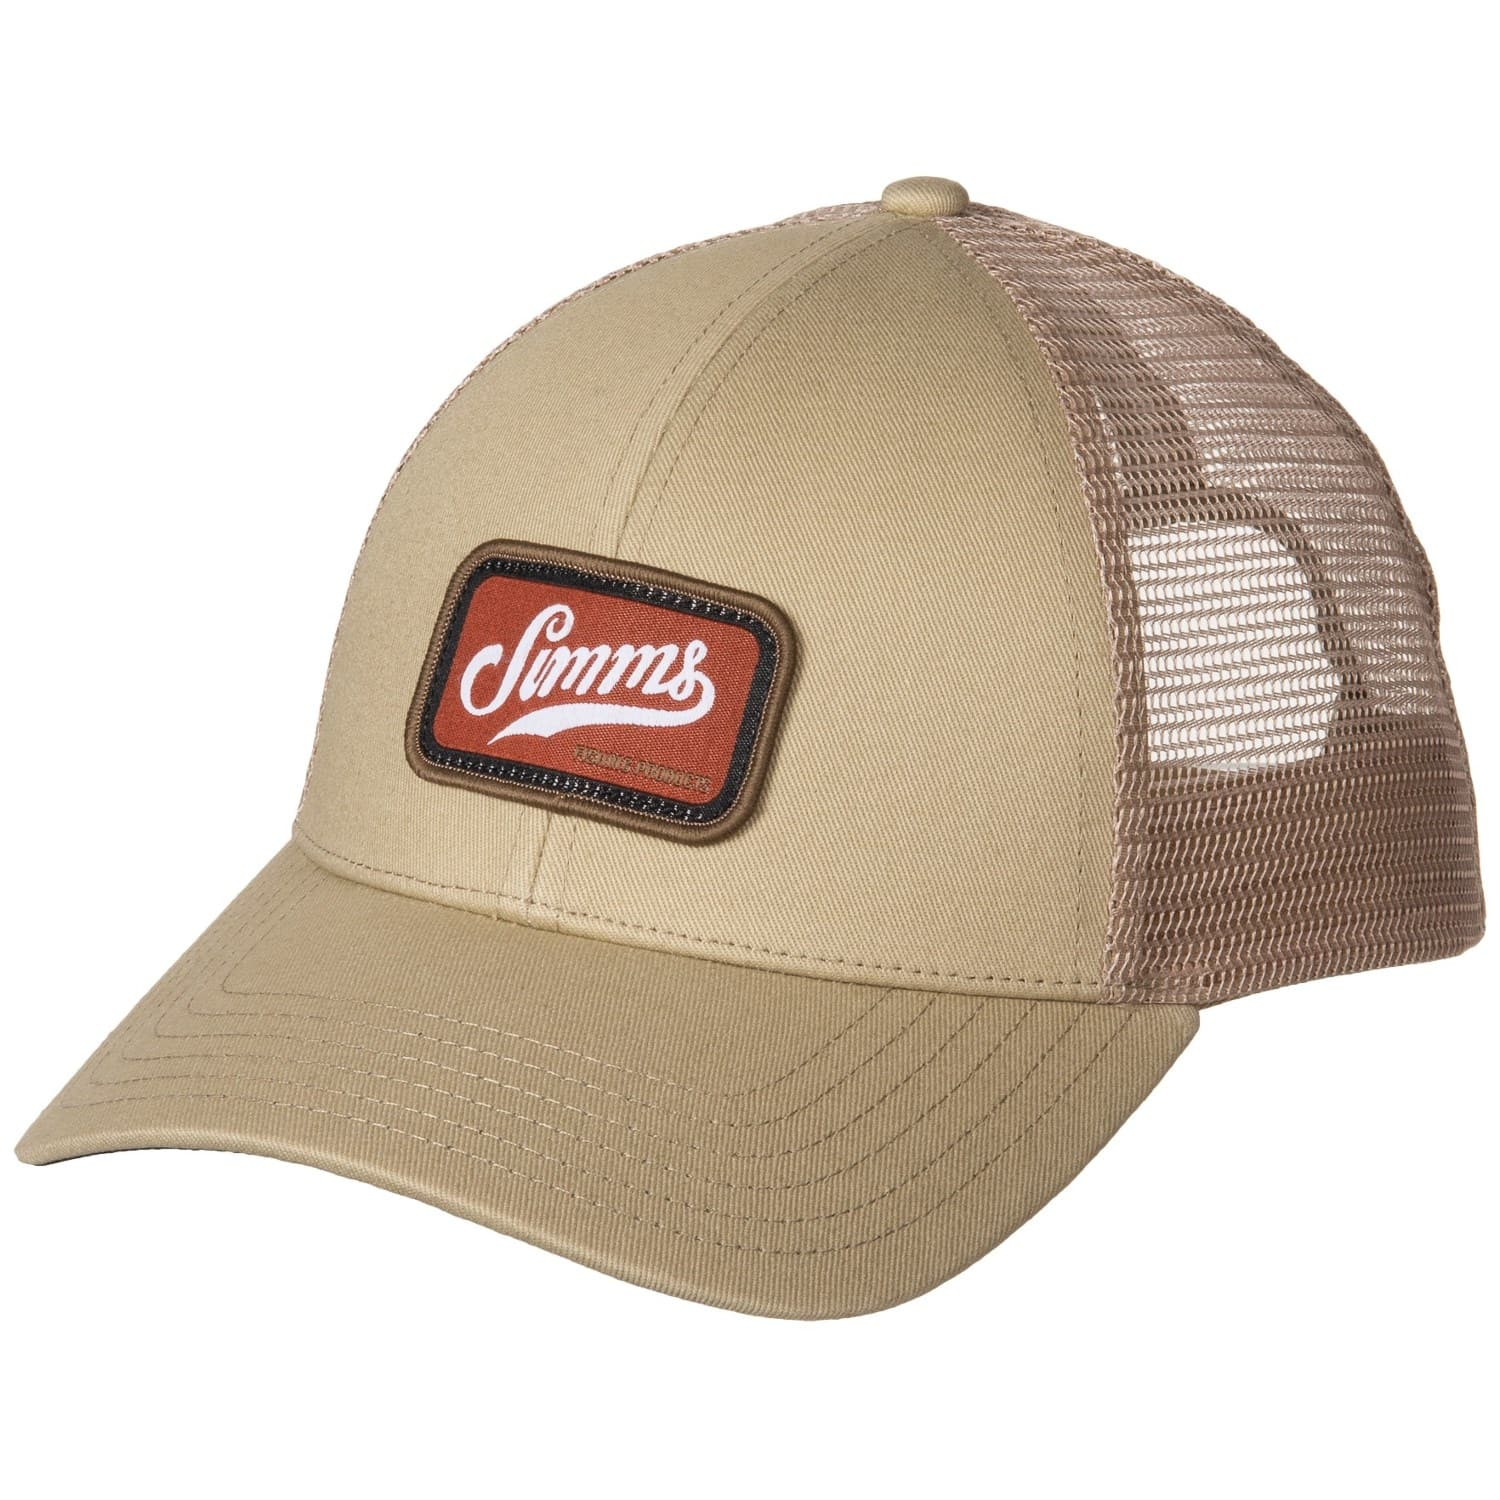 Simms Fishing Hats $10 f/s @ Sierra (several styles and colors)